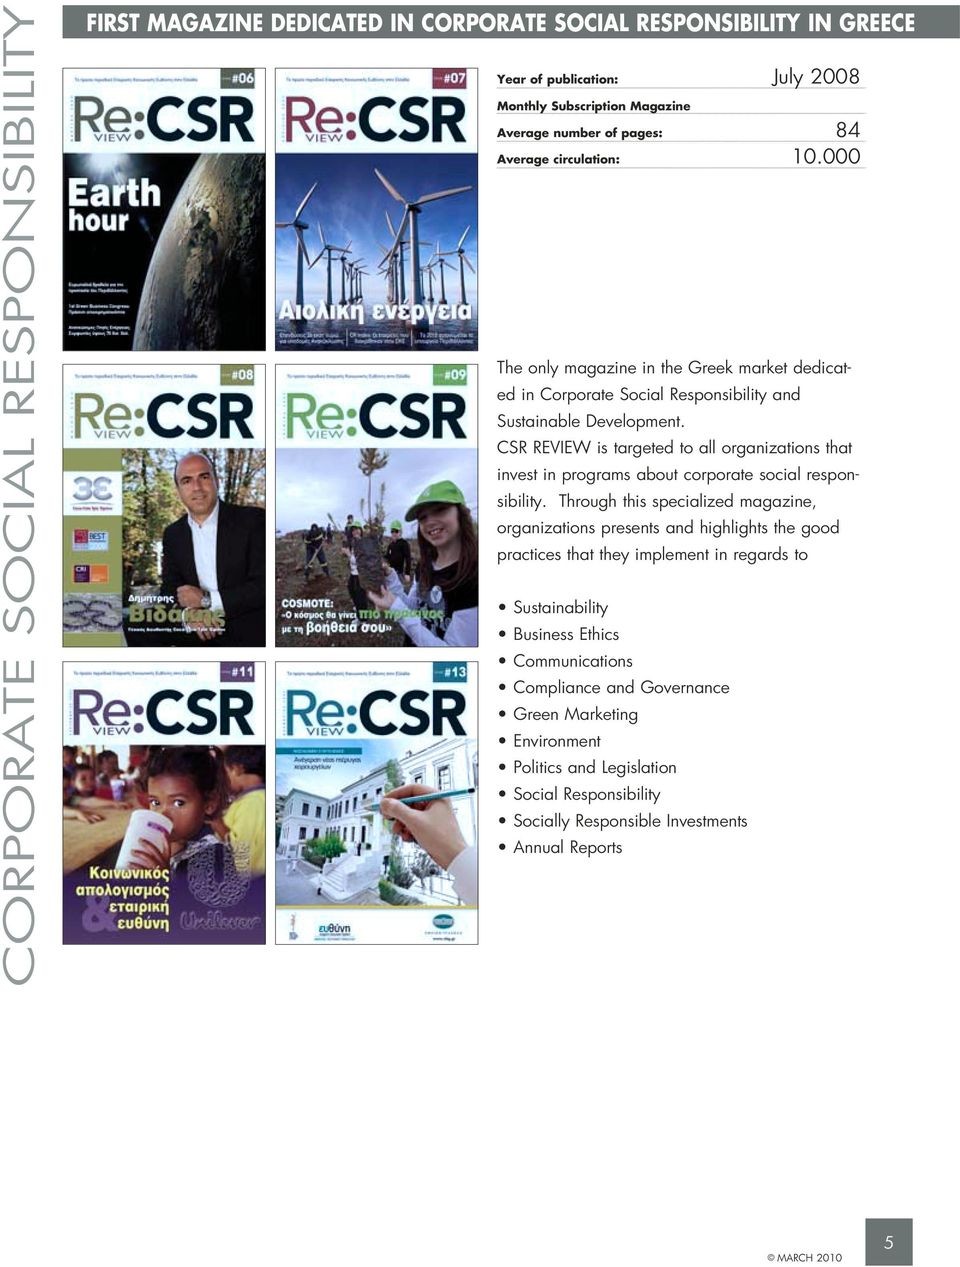 CSR REVIEW is targeted to all organizations that invest in programs about corporate social responsibility.